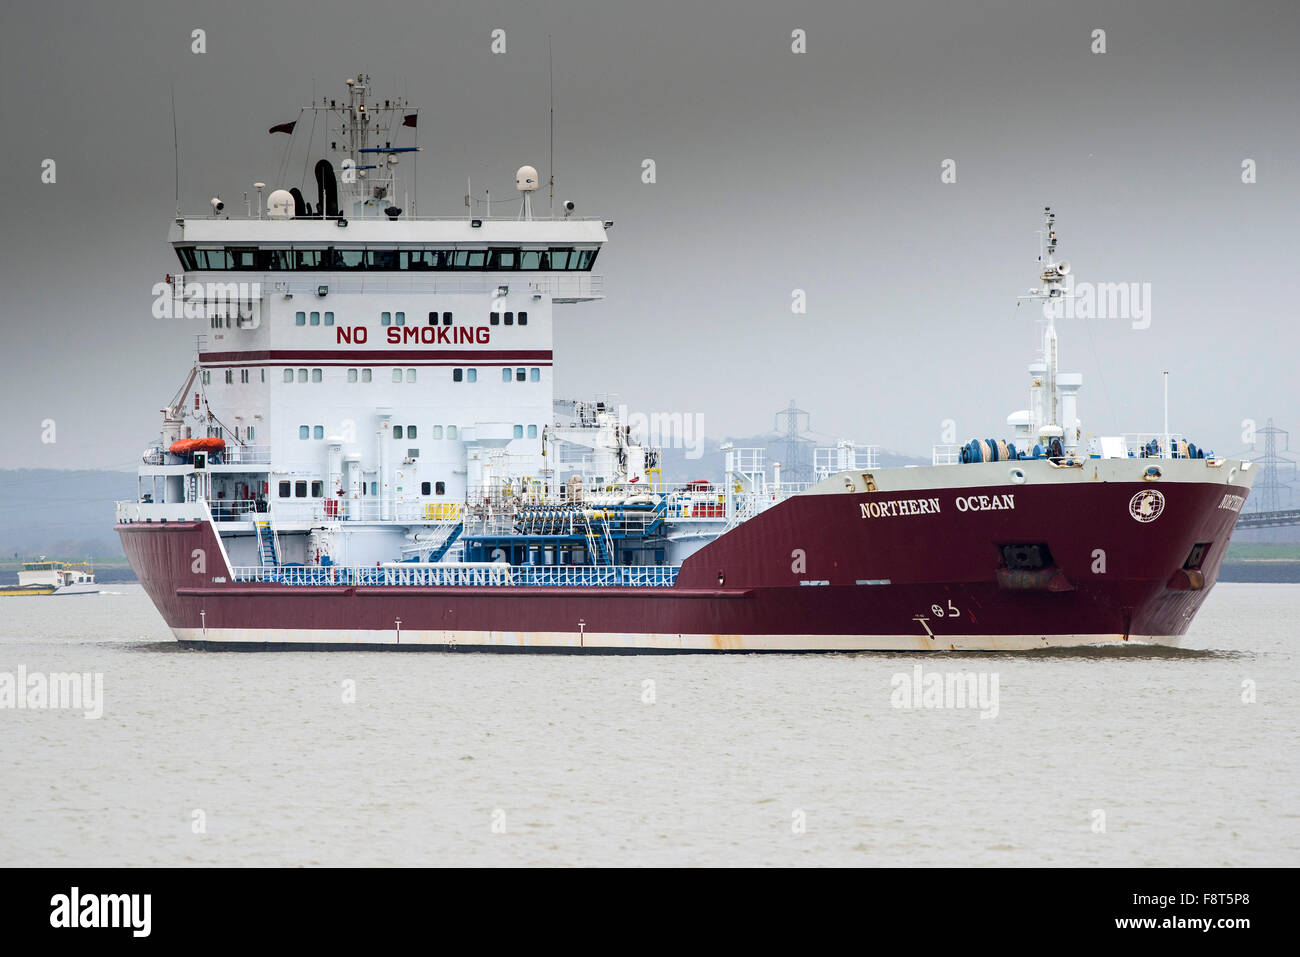 The chemical/oil products tanker, the Northern Ocean steams upriver on the River Thames. - Stock Image